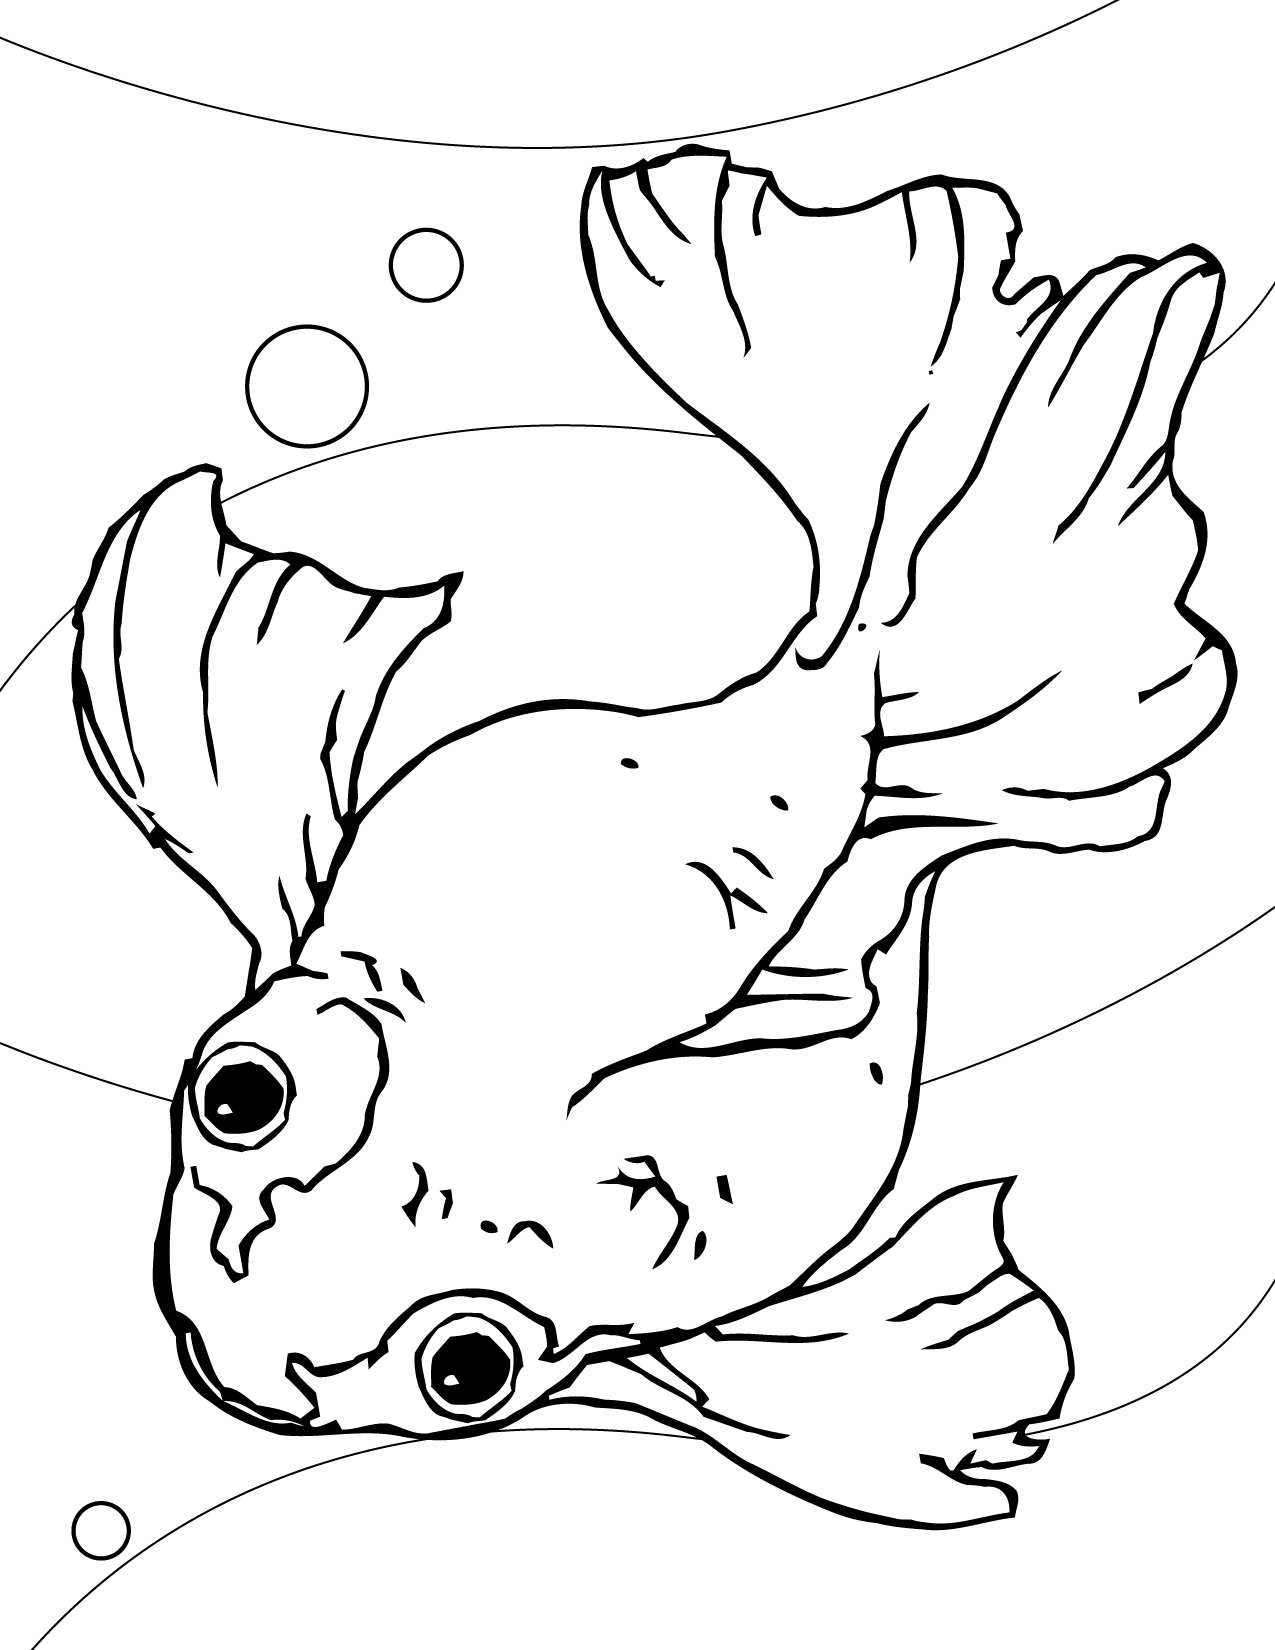 Free Printable Goldfish Coloring Pages For Kids